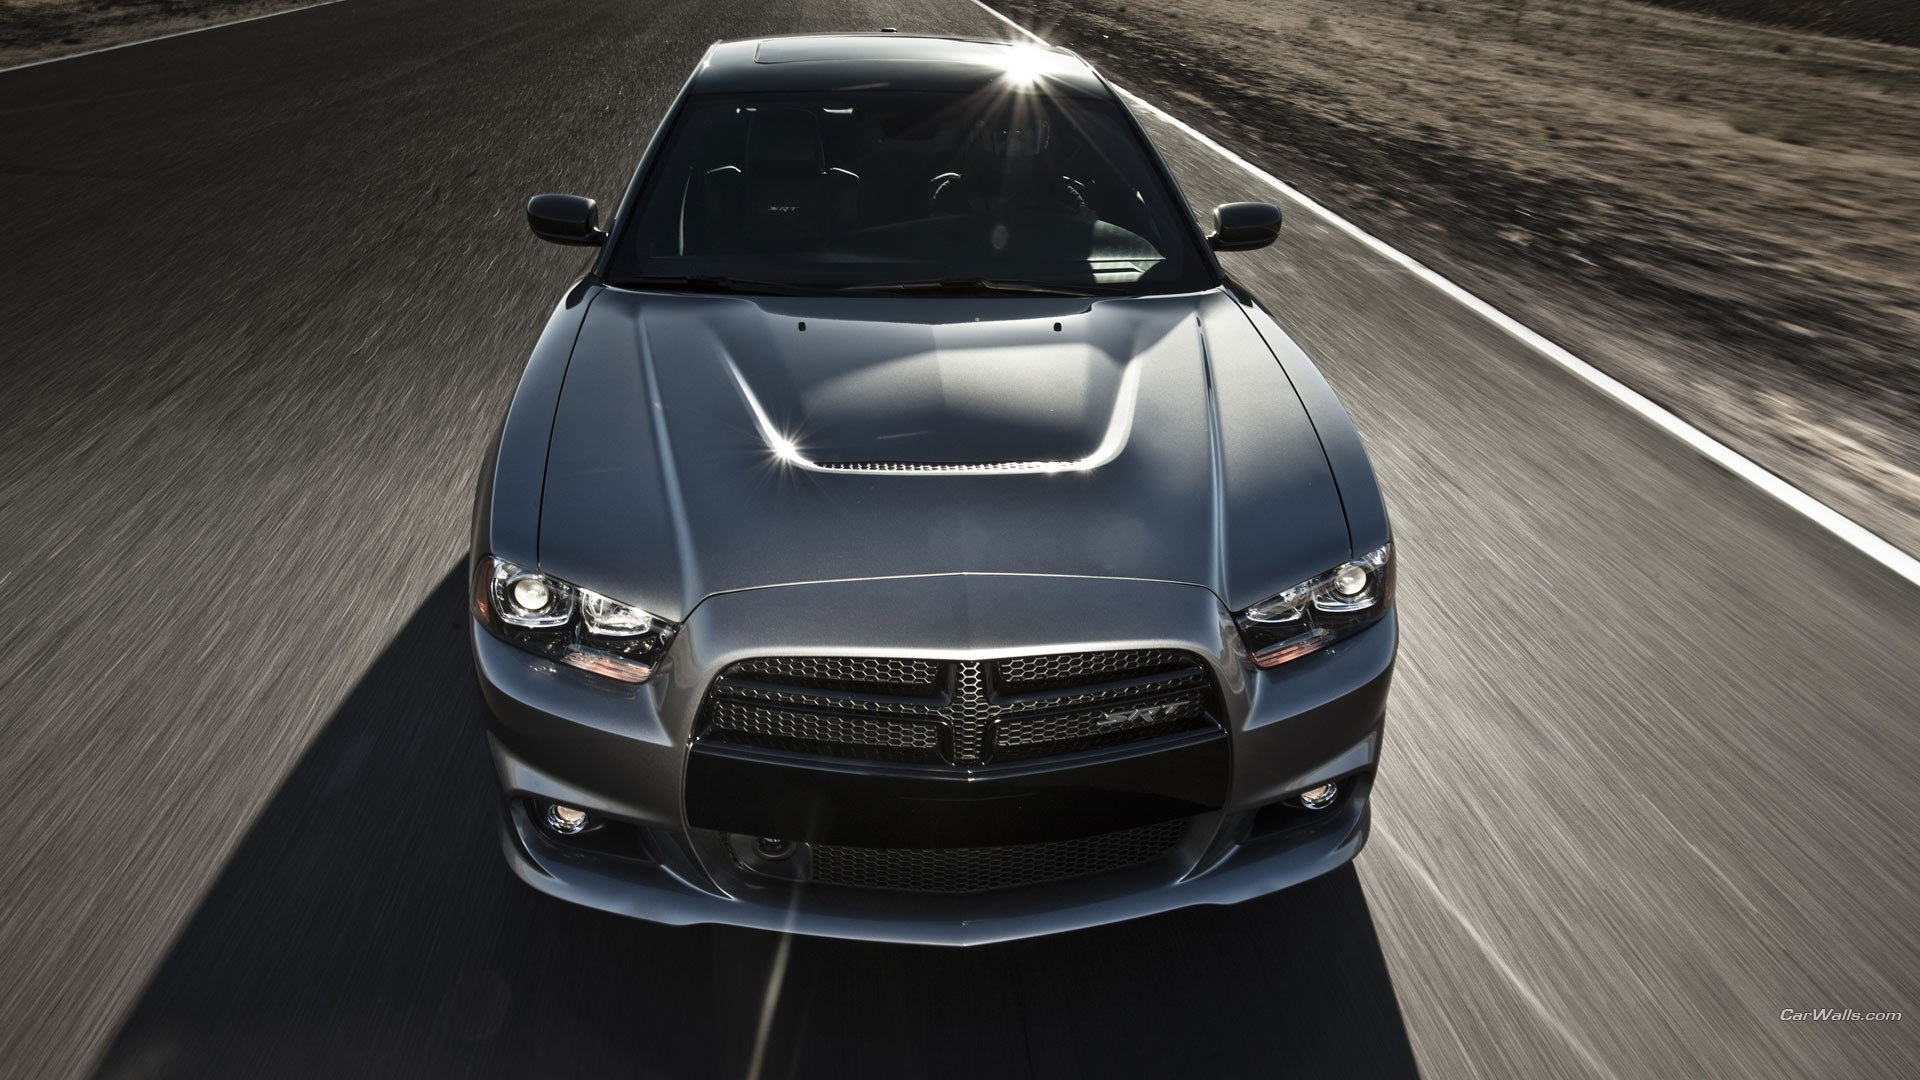 1920x1080-Free-Awesome-dodge-charger-srt-wallpaper-wp360769